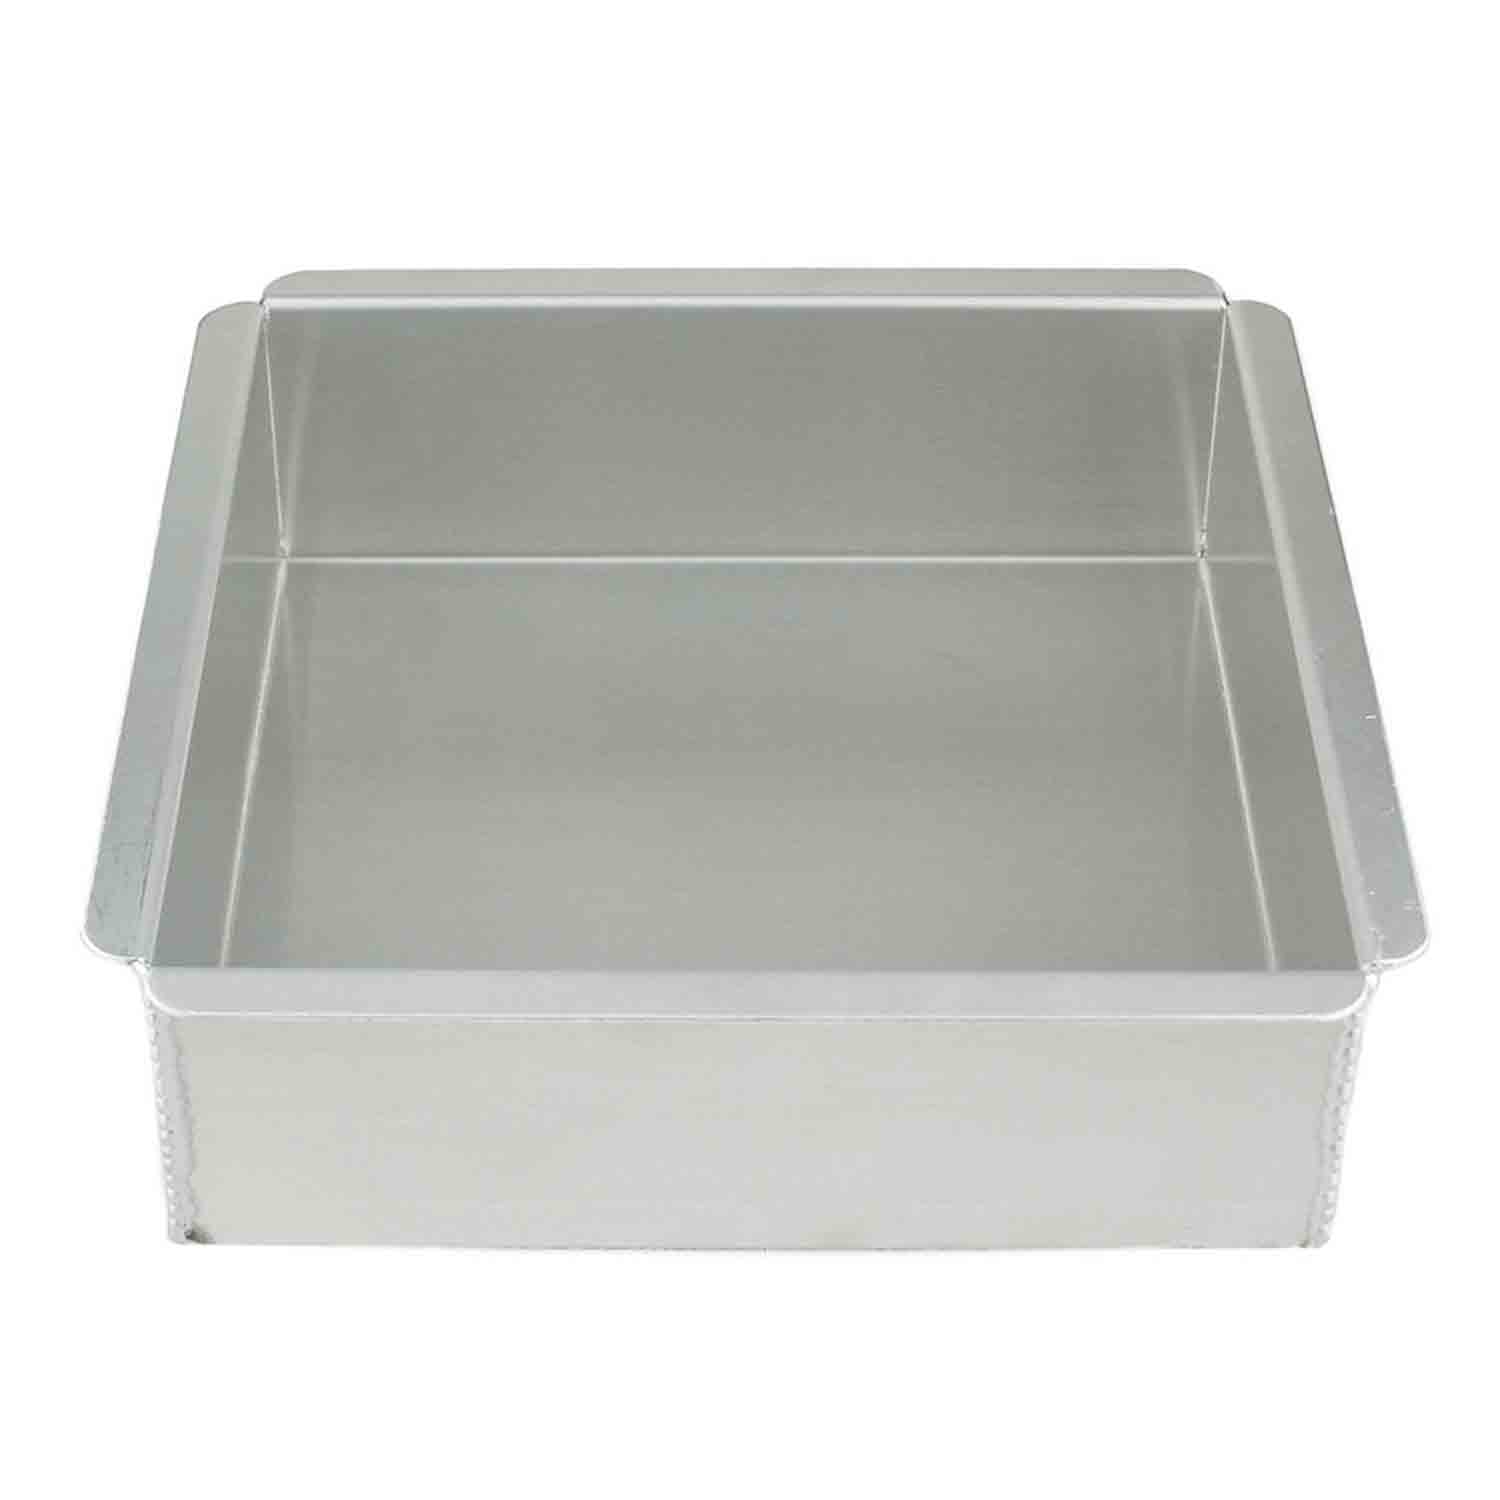 "9 x 3"" Magic Line Square Cake Pan"